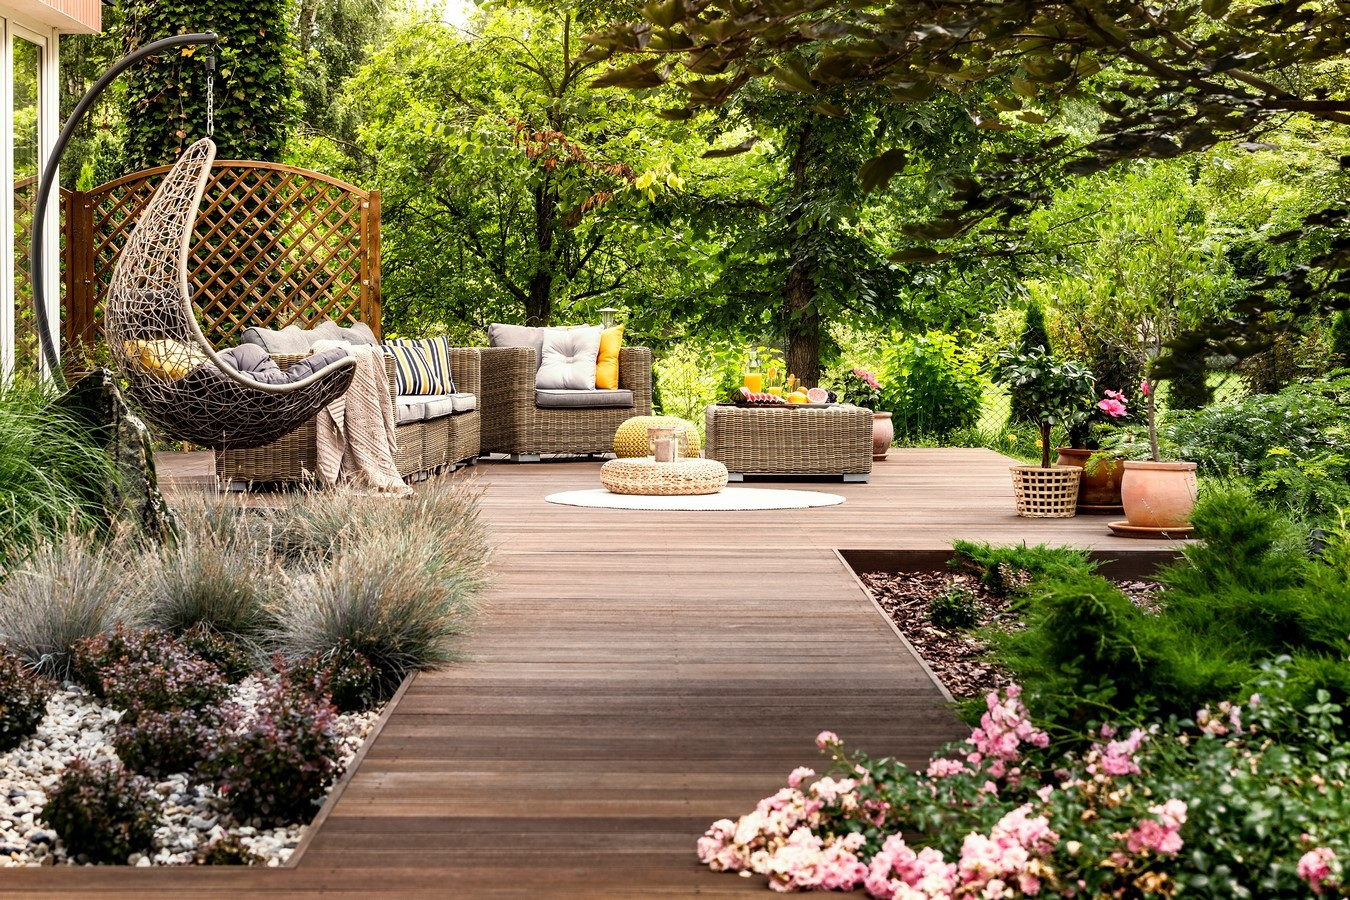 50 Ideas and Tips for Landscaping - Sheet13